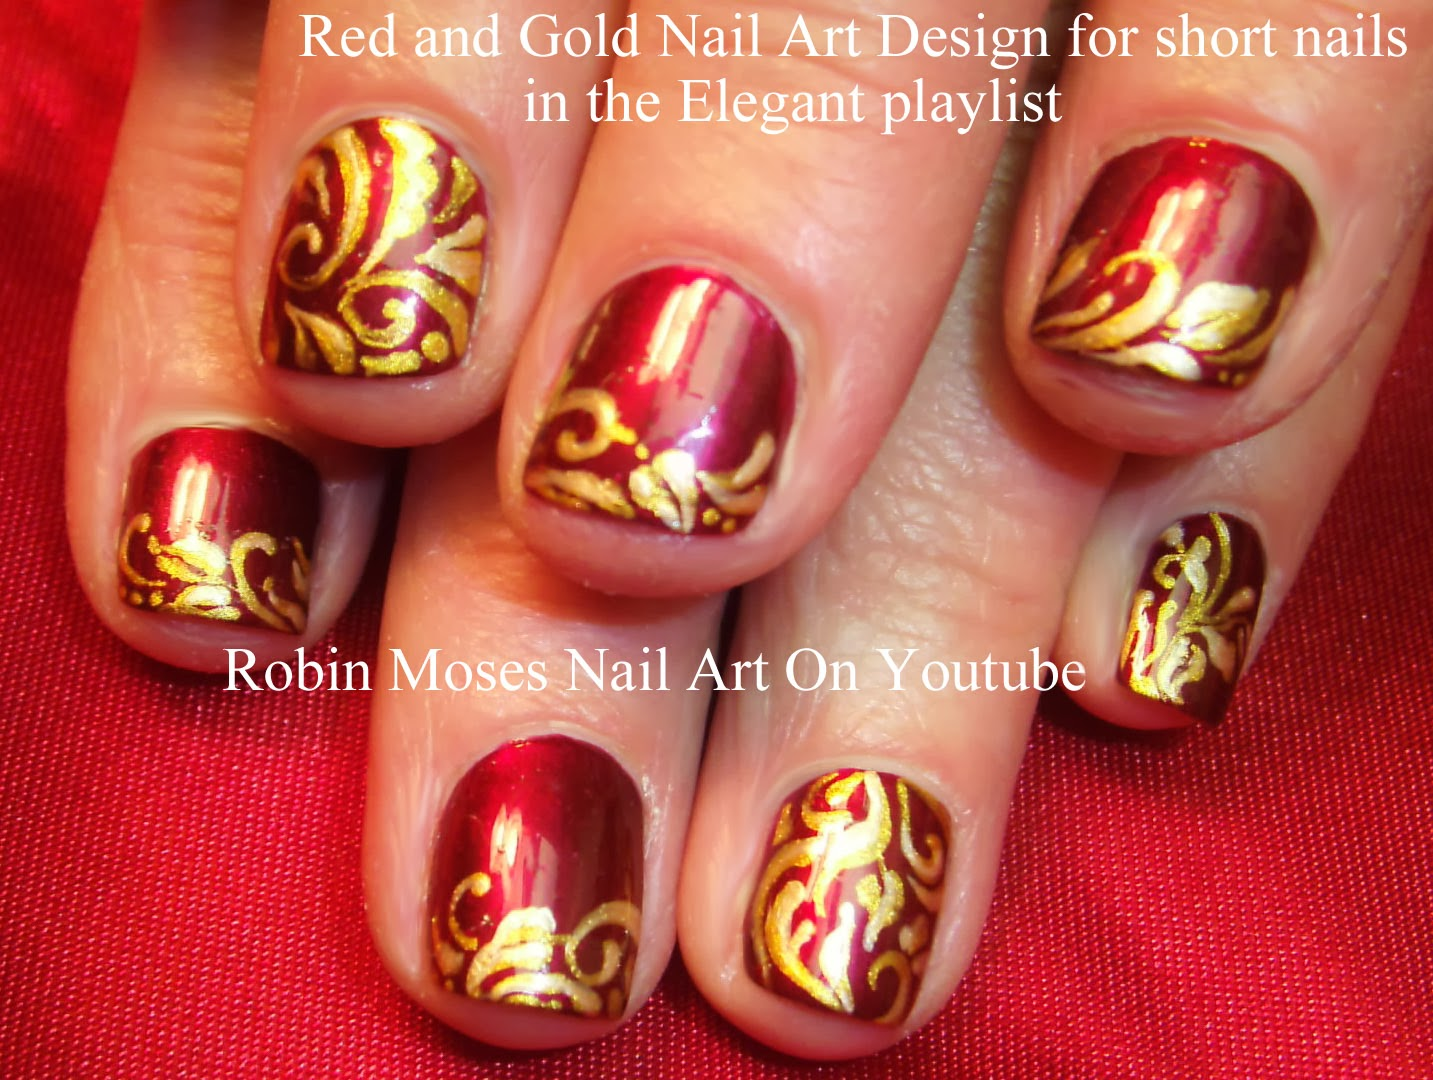 Robin Moses Nail Art: December 2013